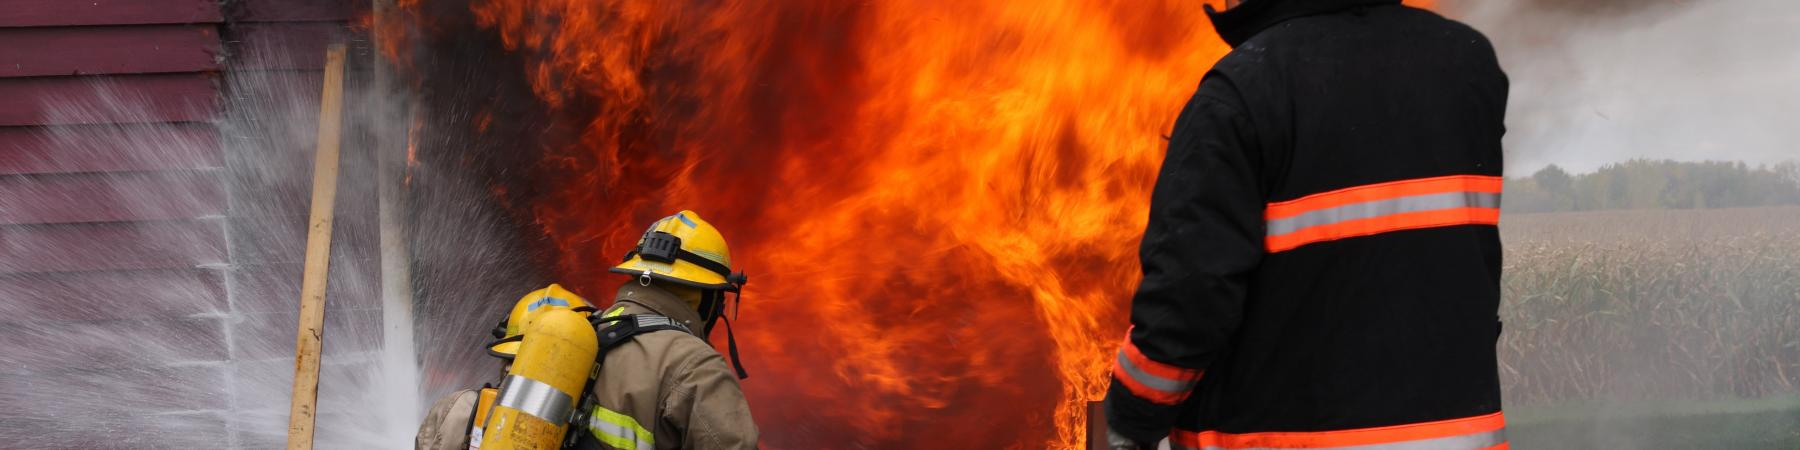 Standard Fire & Special Perils Policy | Palm Insurance ...